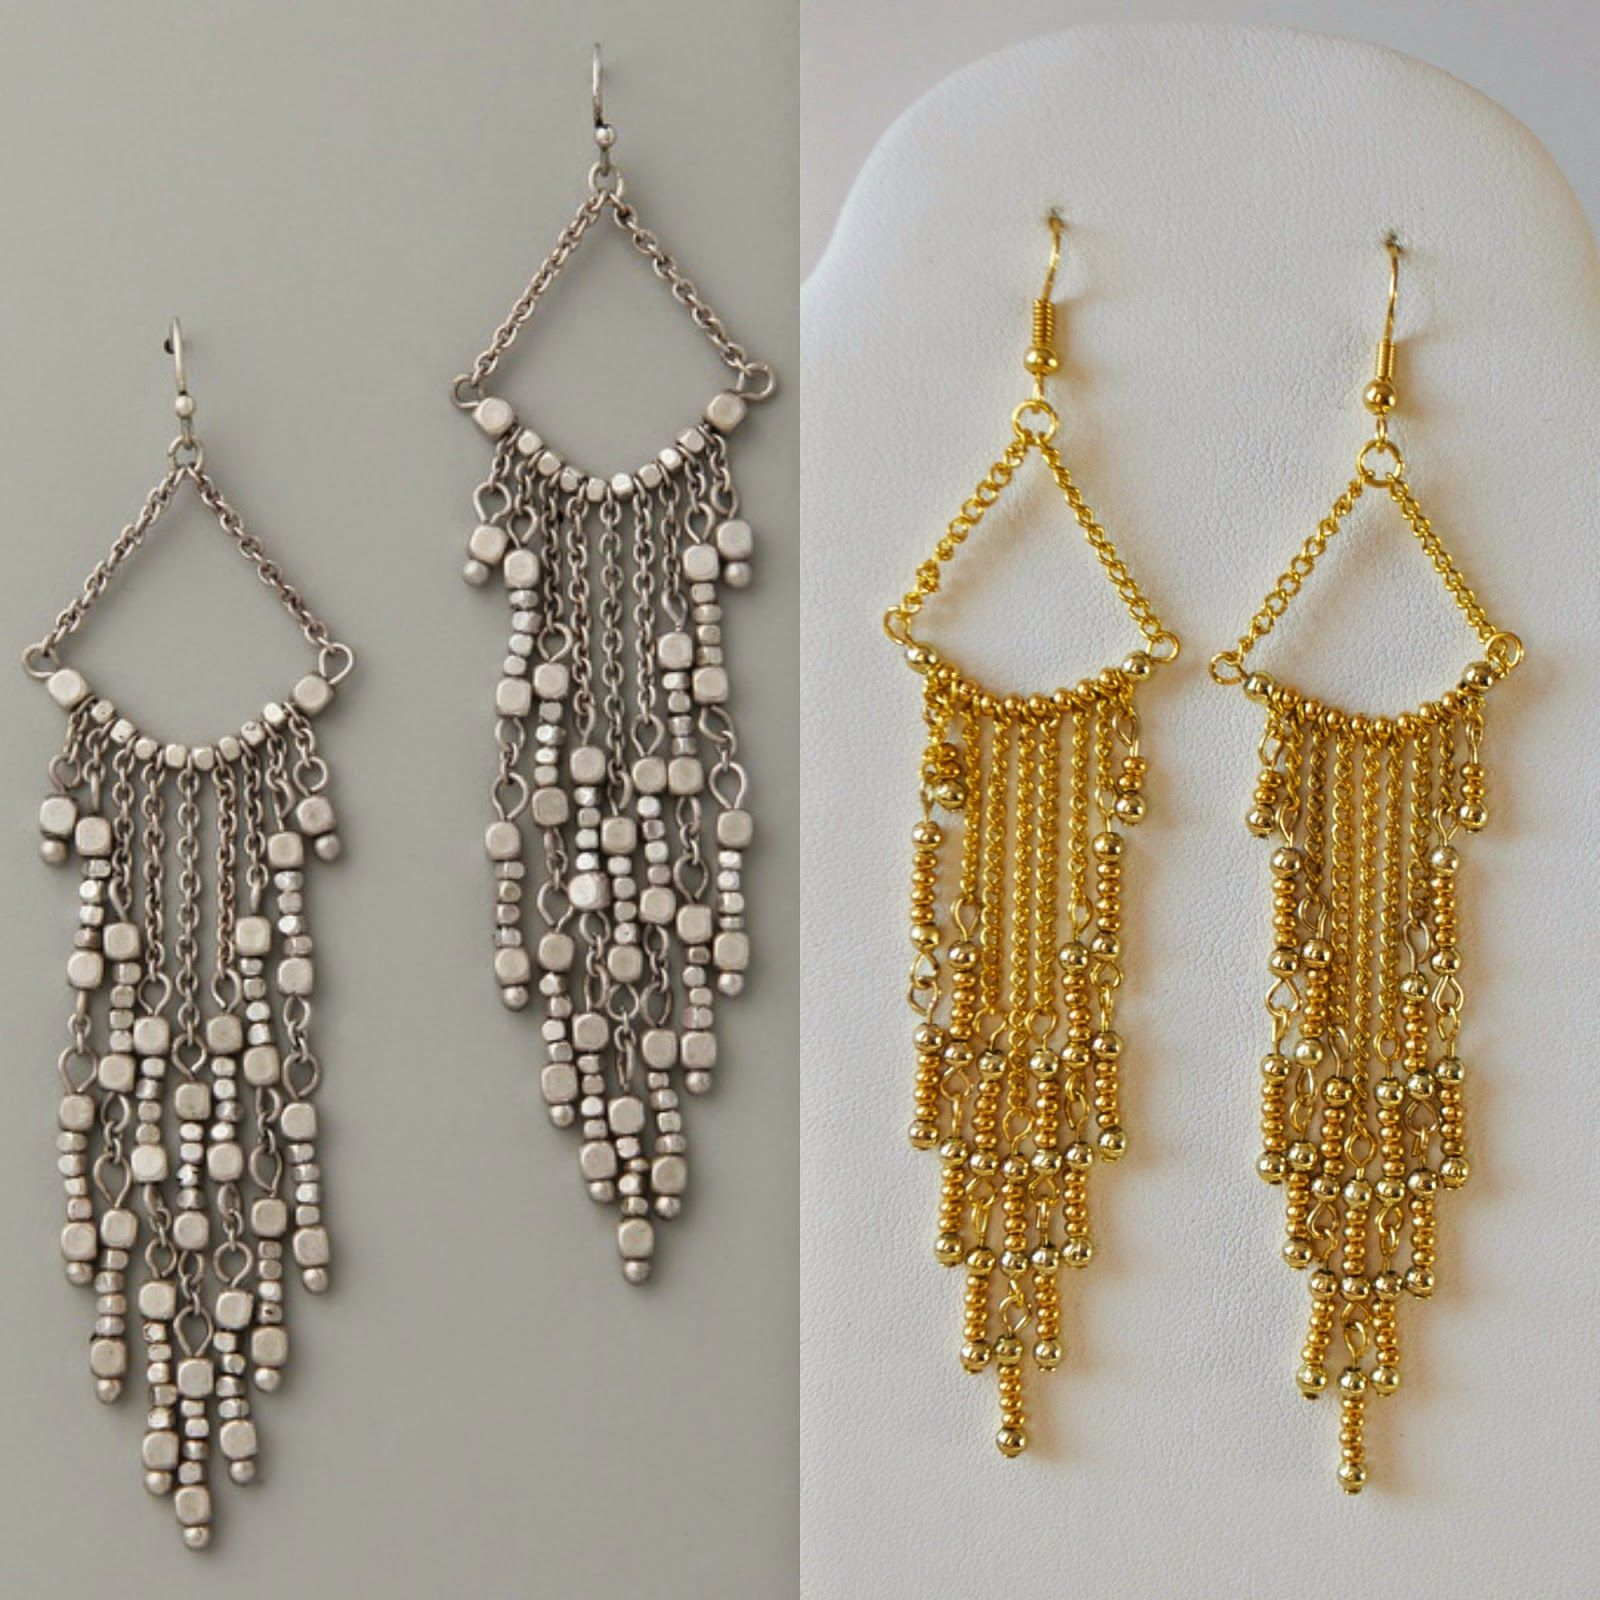 DIY Gold Chandelier Earrings | My Girlish Whims | Jewelry Making ...